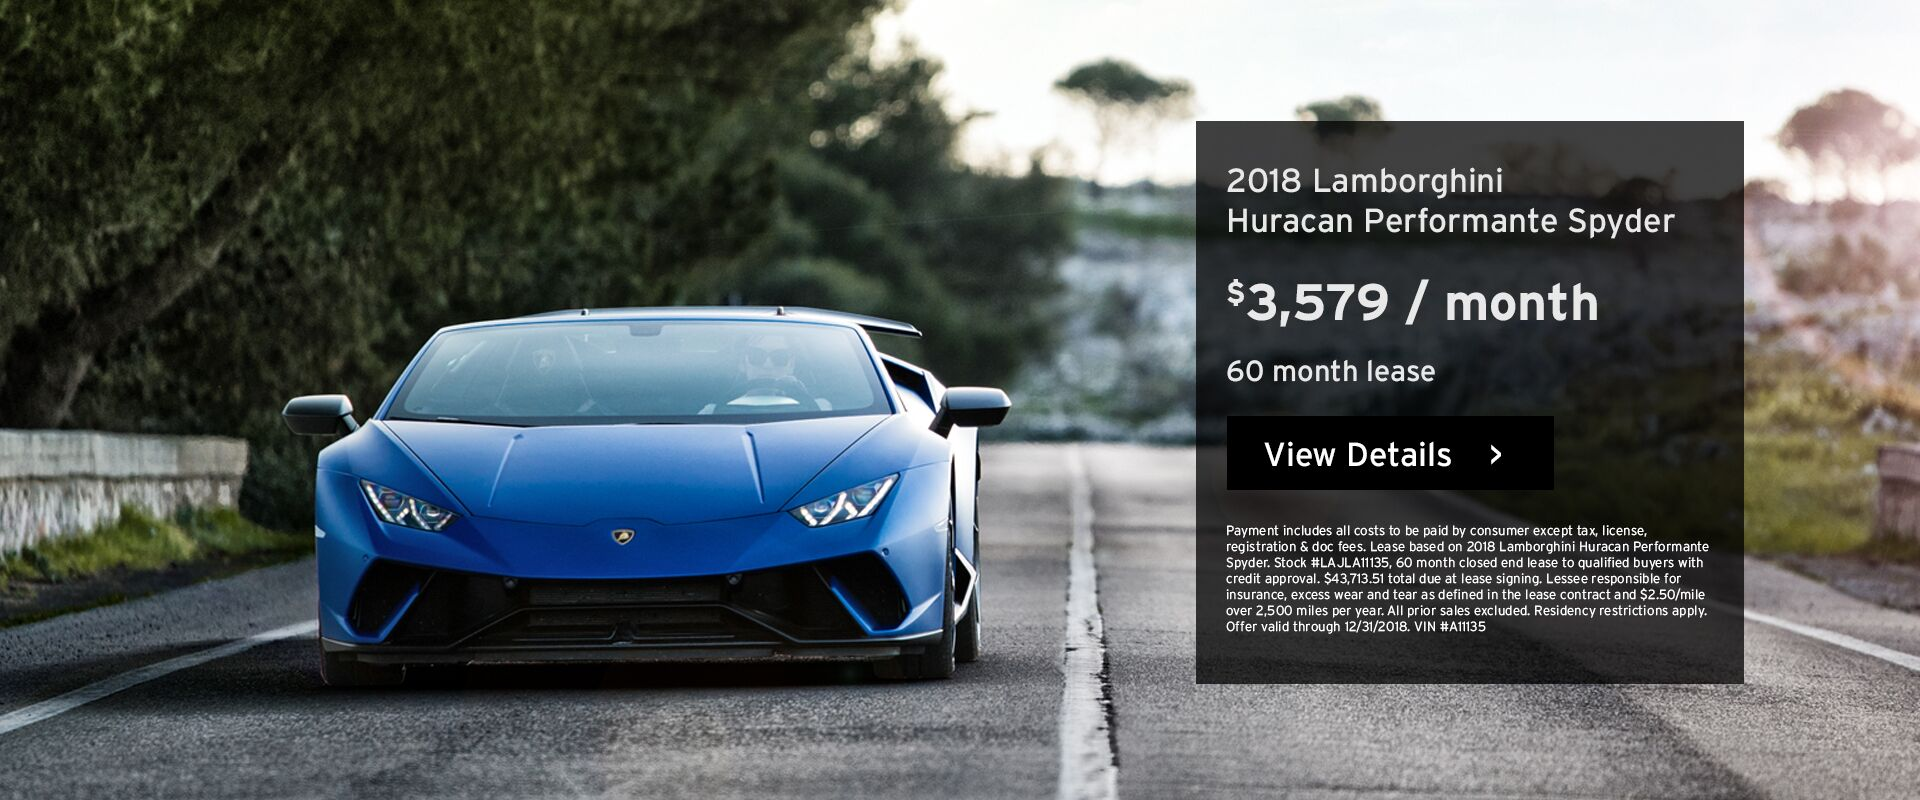 Huracan Performante Spyder Lease